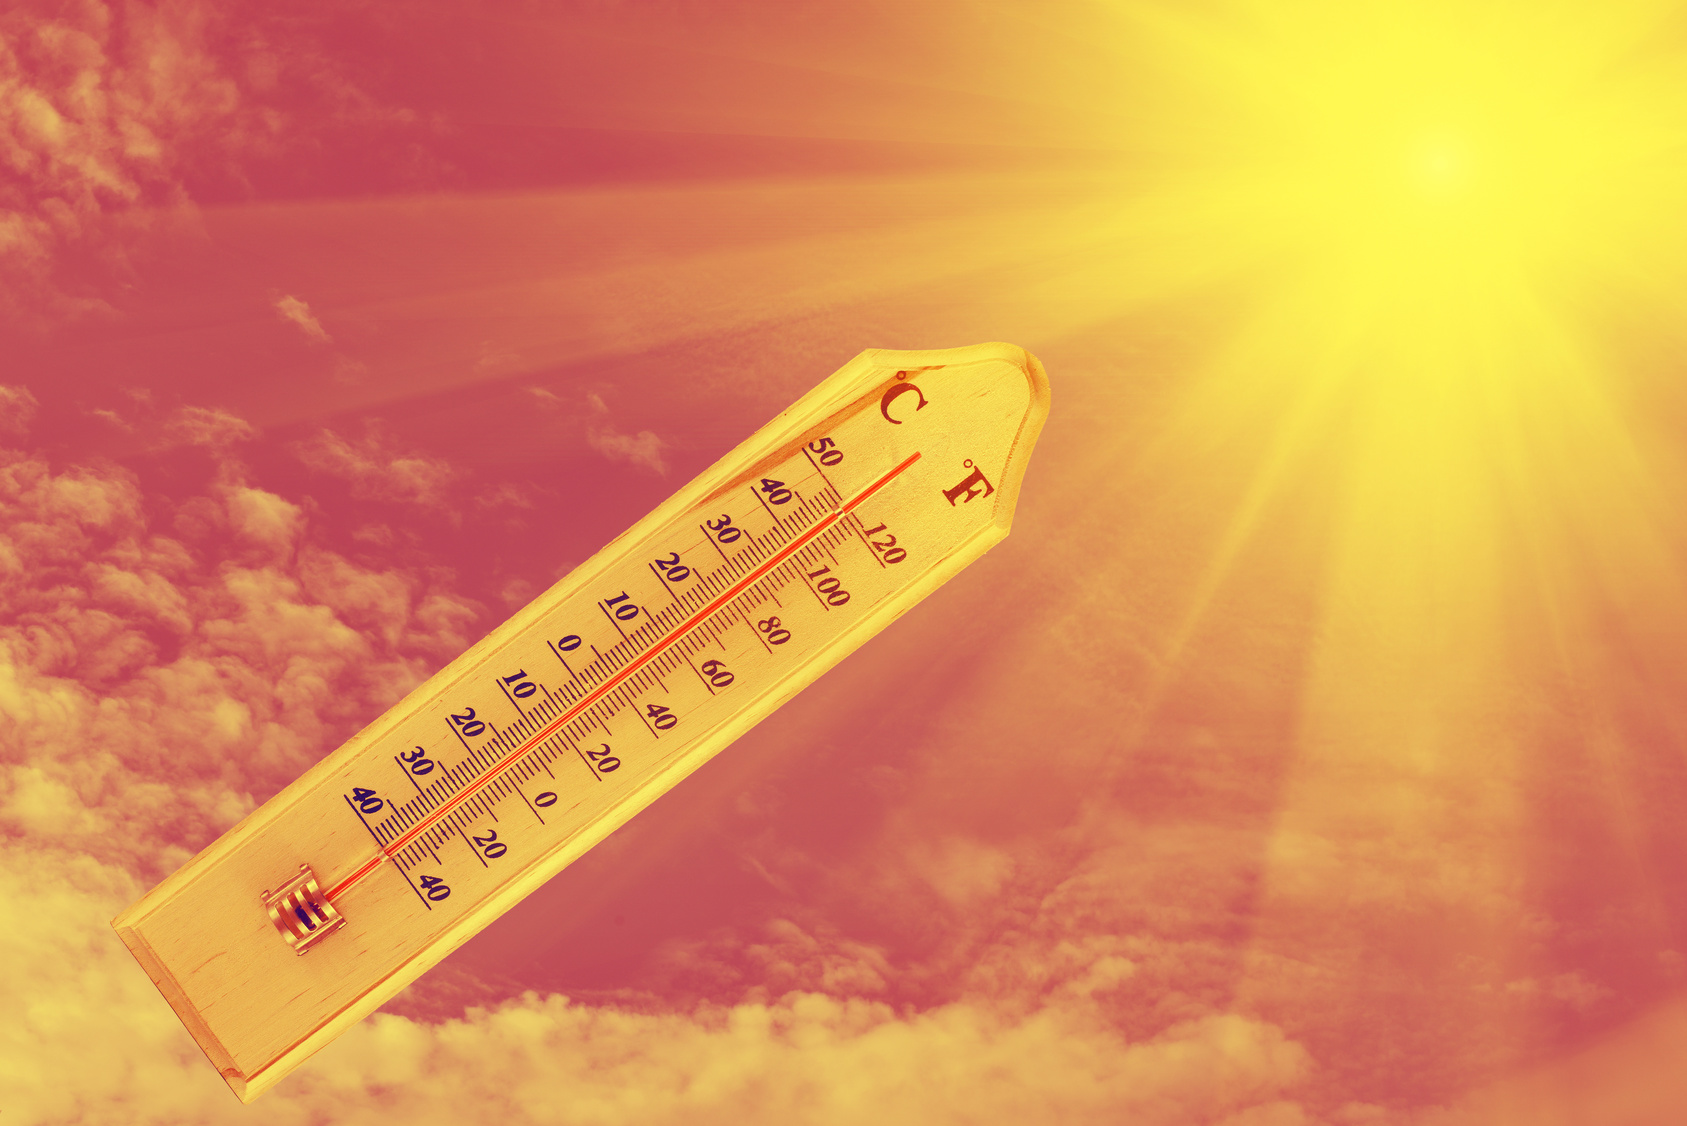 Unusually Warm For April For Some, But Is It A Heatwave?